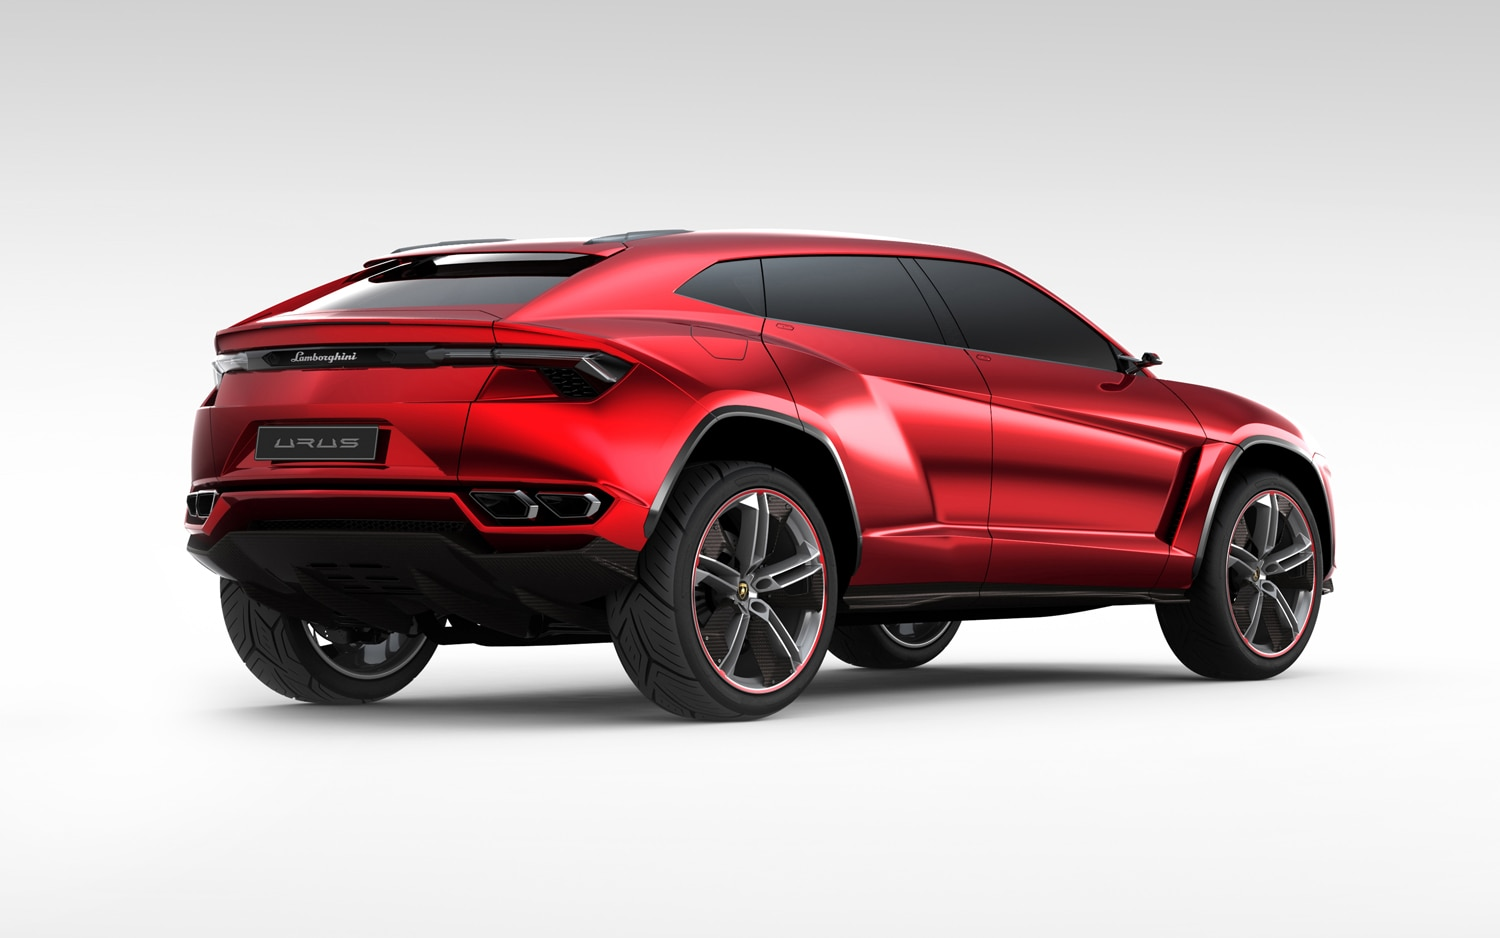 Lamborghini Urus Concept Rear Right Side View1